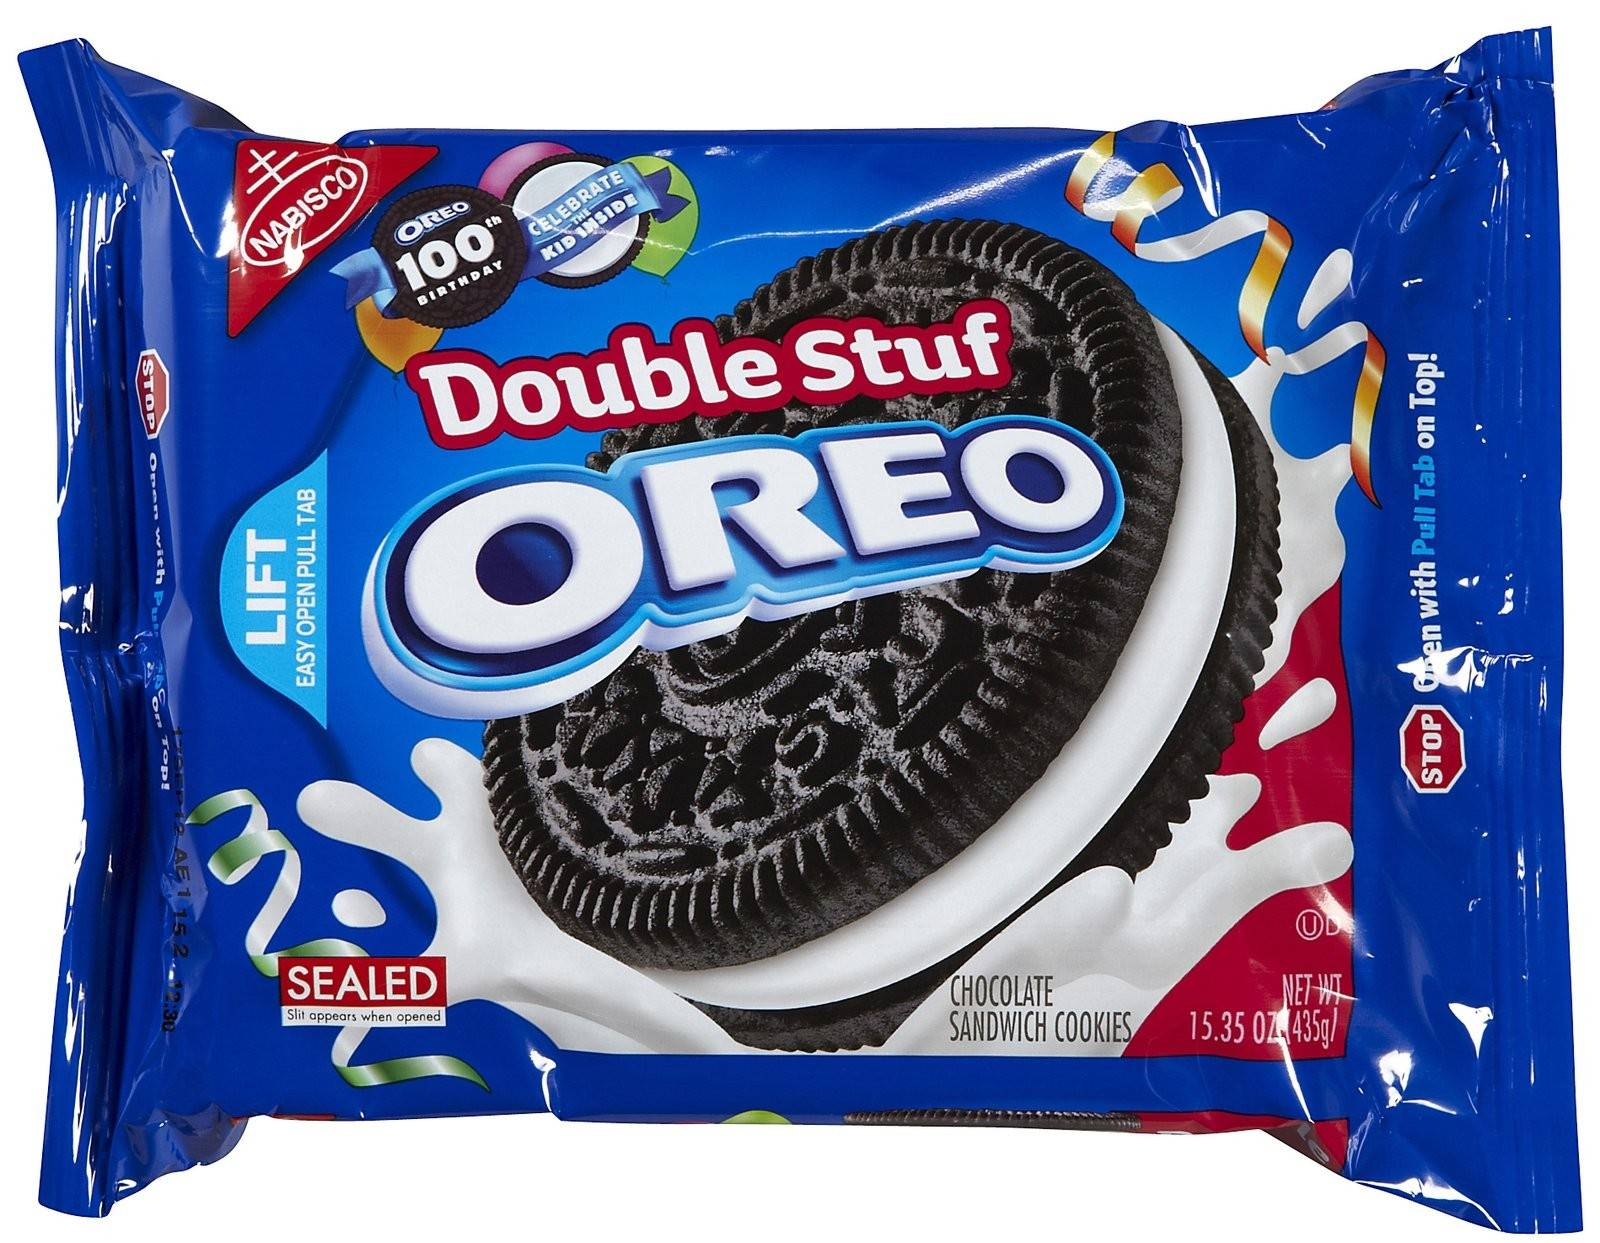 Mondelez reported a fourth-quarter profit Wednesday that fell short of Wall Street expectations as the Oreo maker struggled with cookie sales in China.